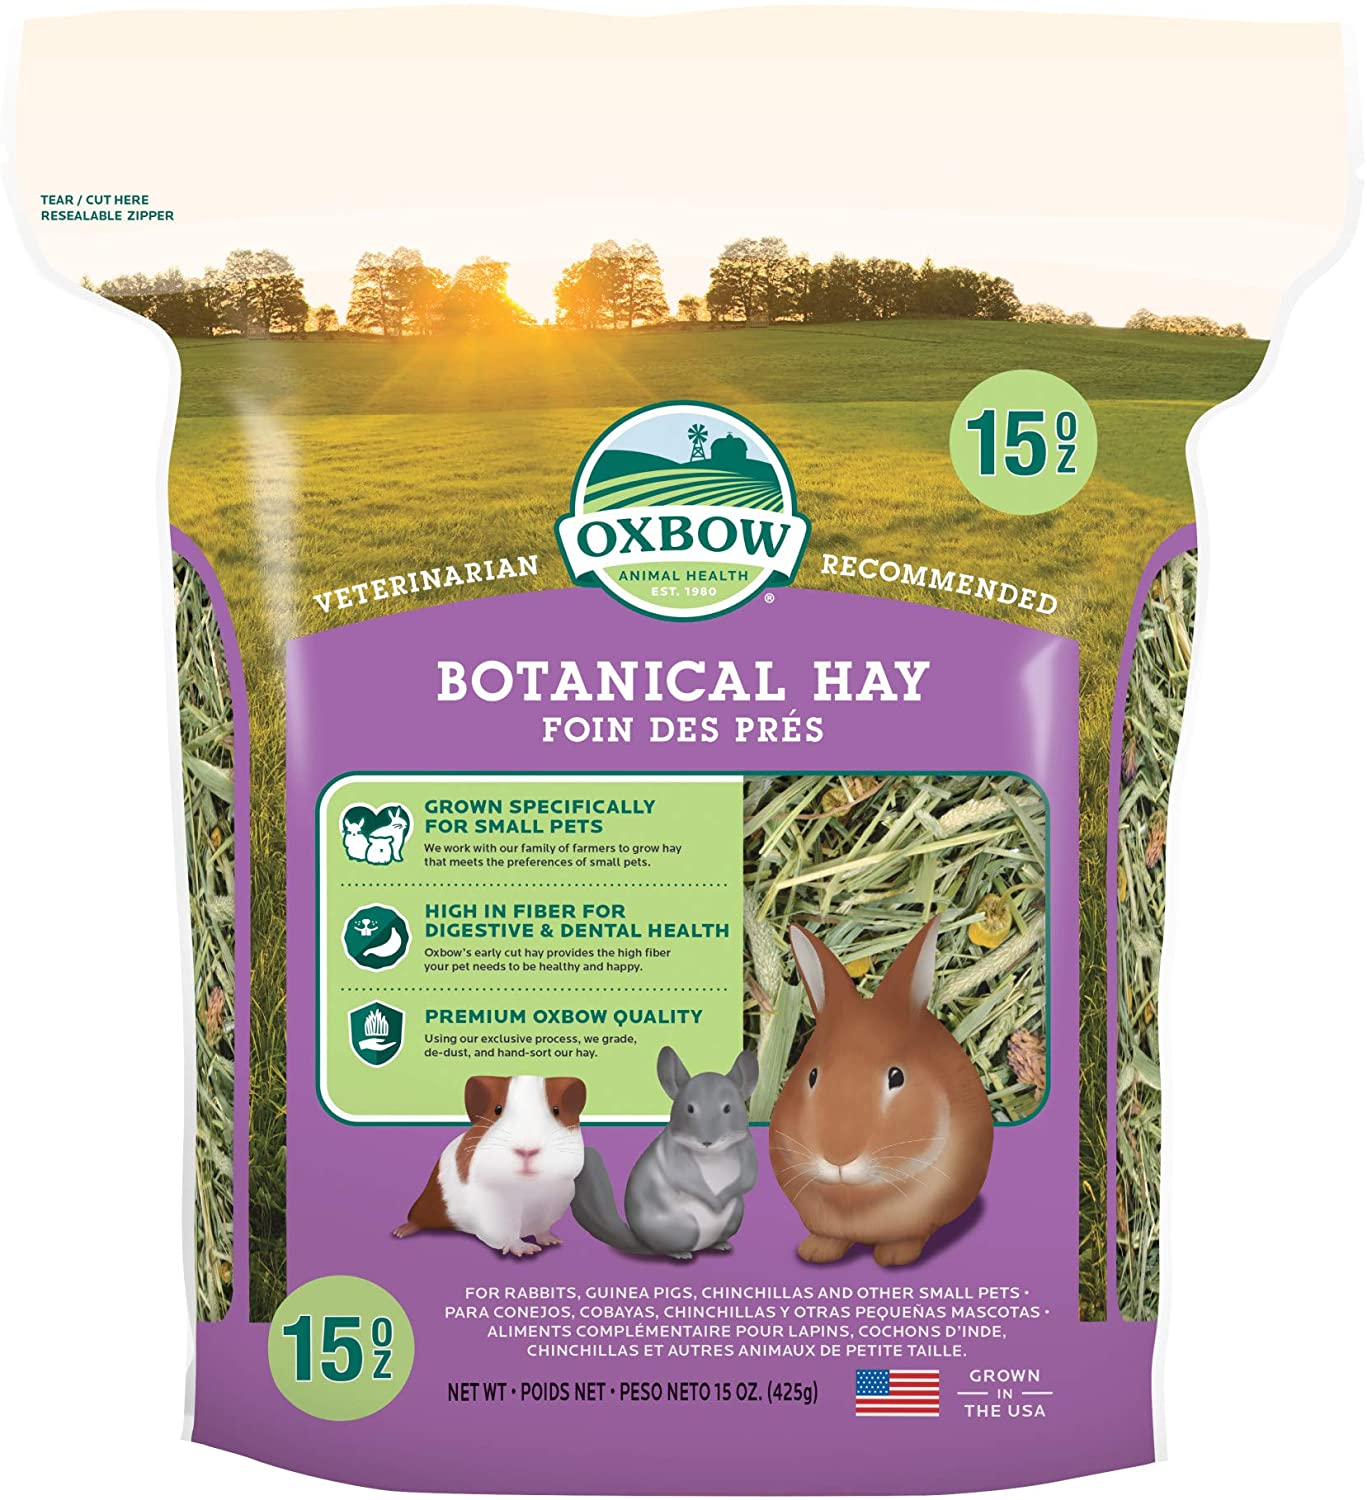 Oxbow Animal Health Oxbow Botanical Western Timothy Hay - All Natural Hay for Rabbits, Guinea Pigs, Chinchillas, Hamsters & Gerbils - 15 oz.